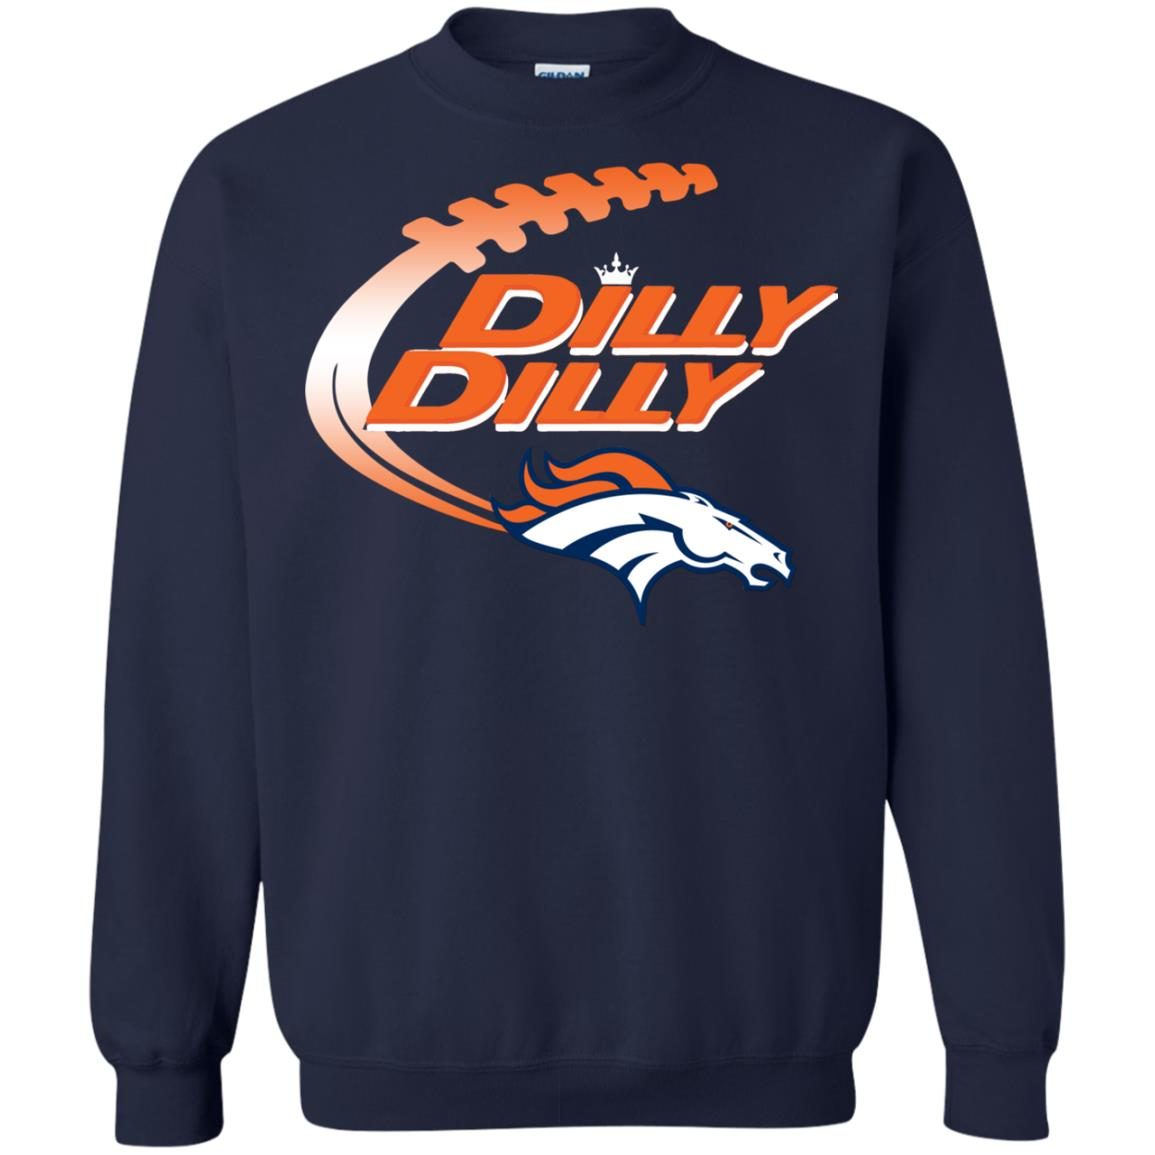 image 1858 - Dilly Dilly Denver Broncos Shirt, Hoodie, Sweater